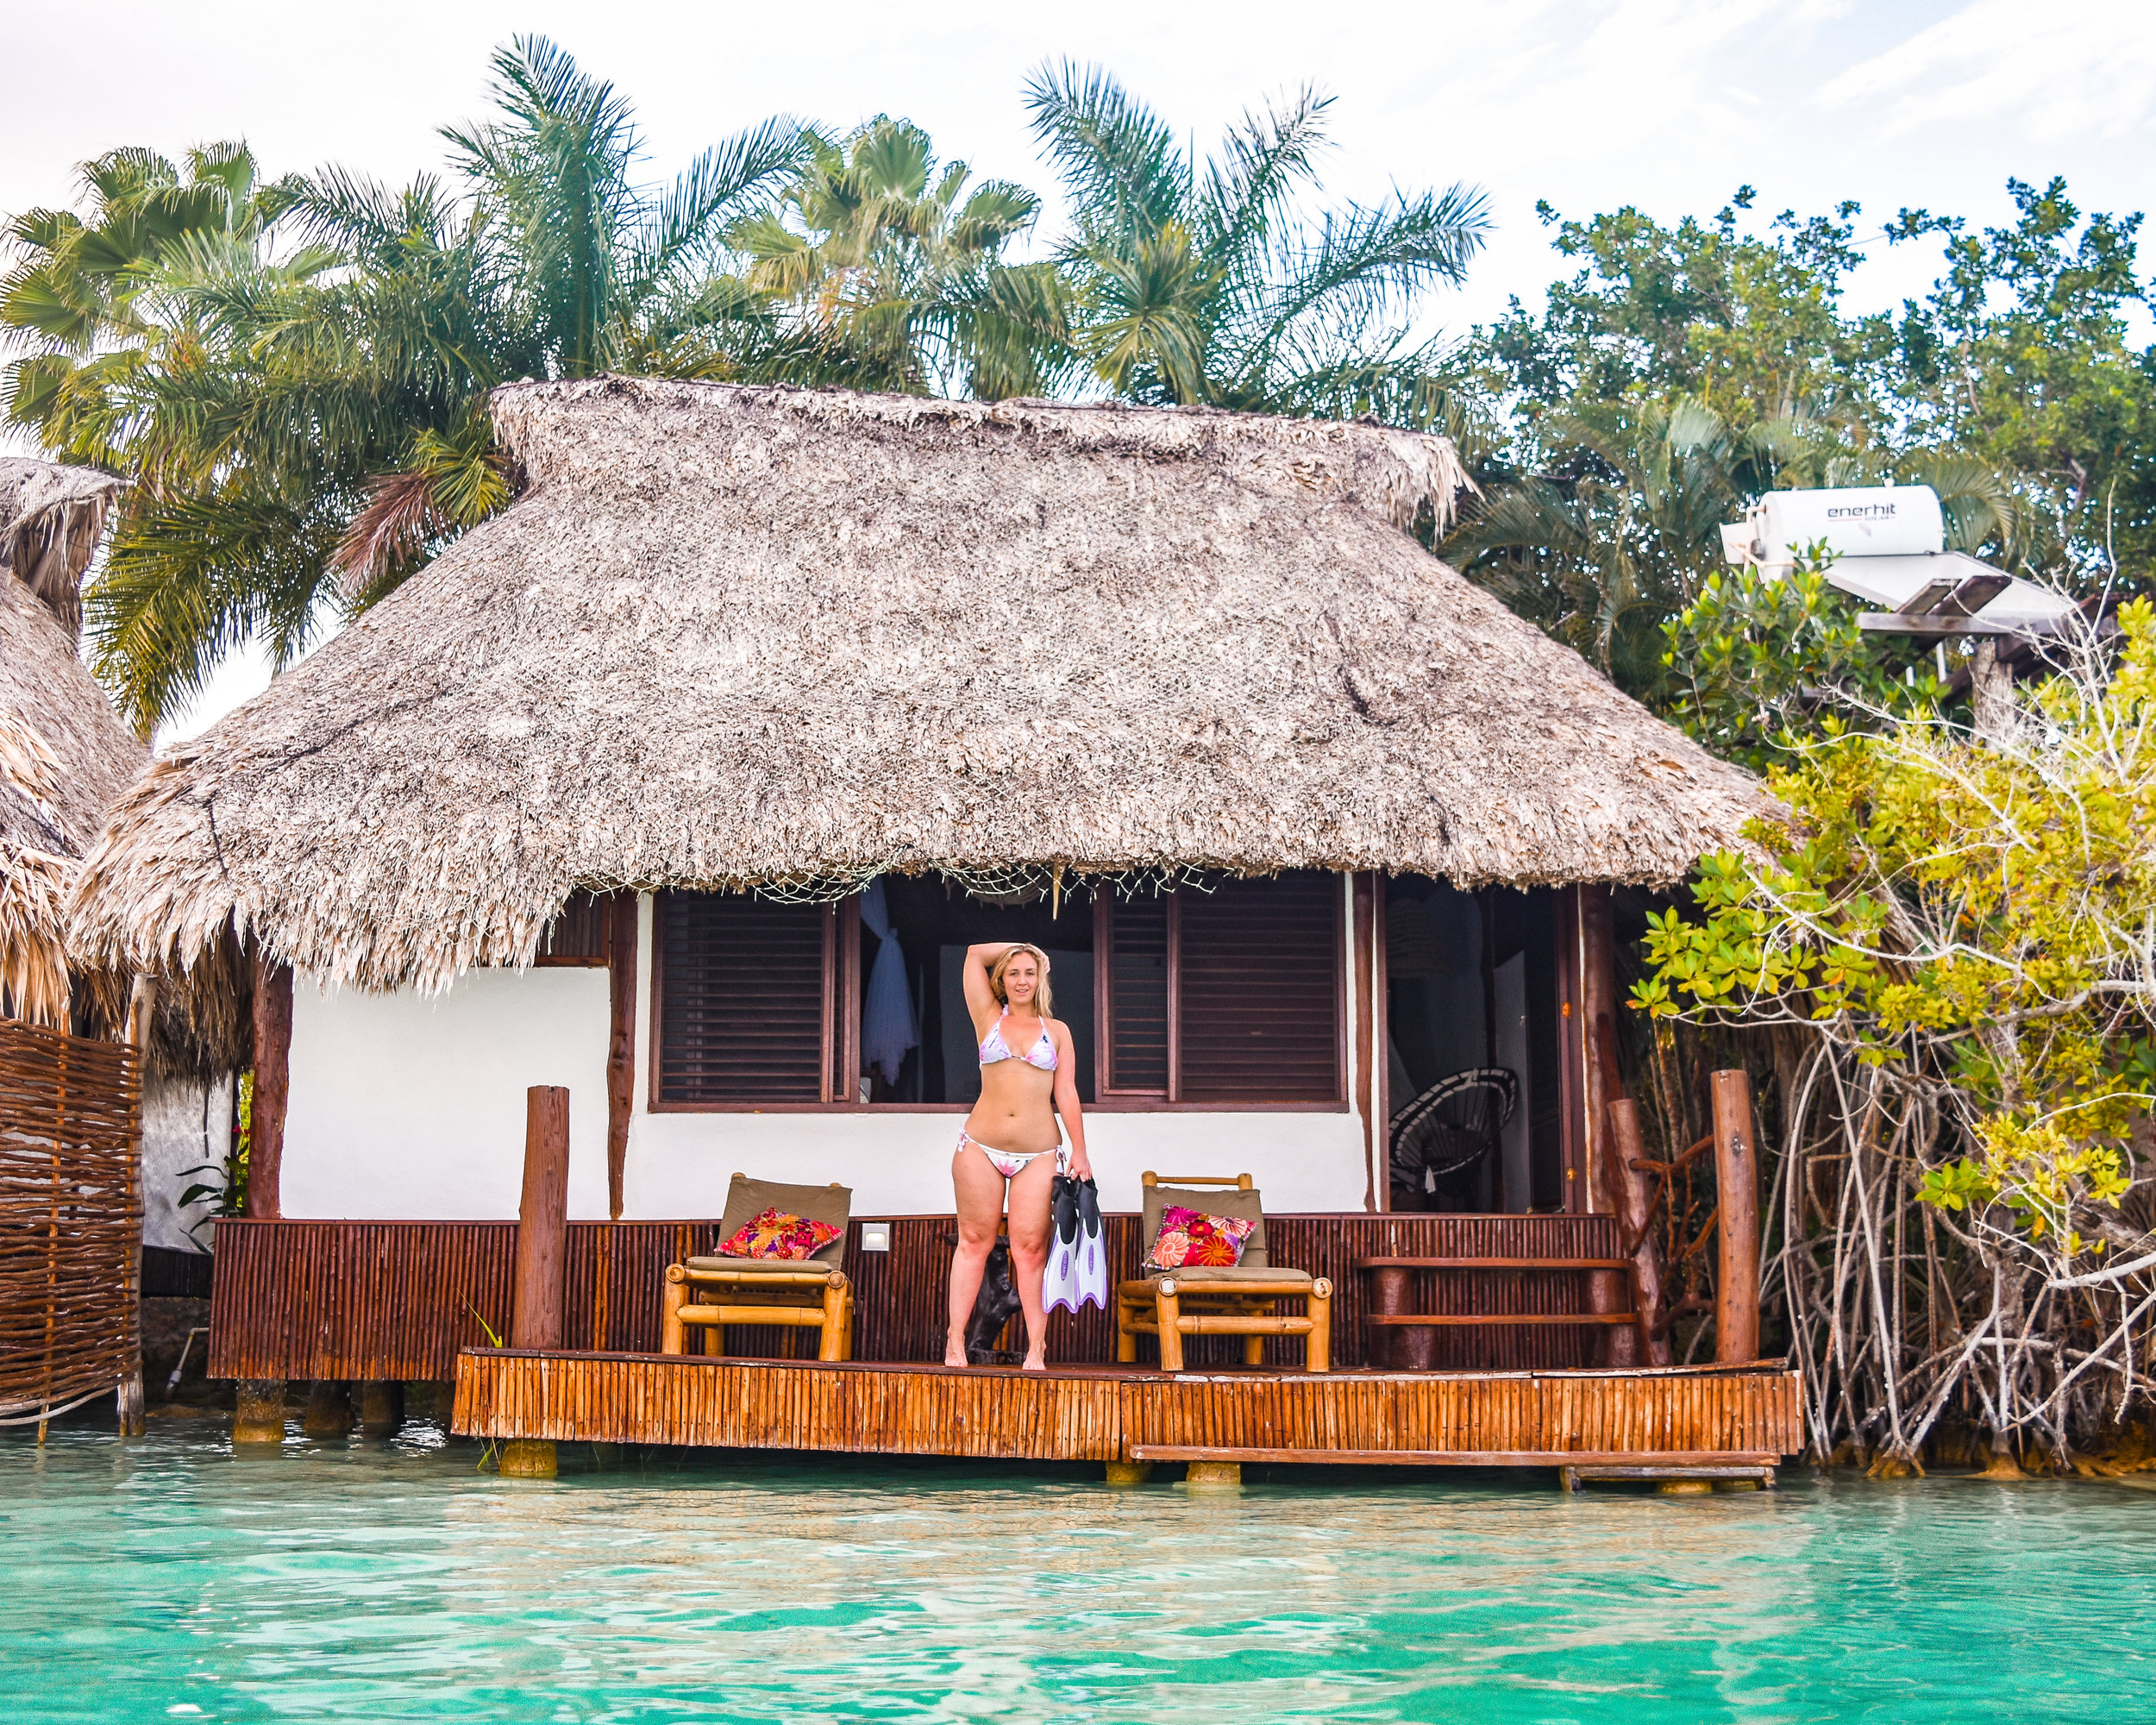 Worth every penny we pinched. One of the bungalows we stayed in at Centro Holistico Akalki in Bacalar, Mexico.